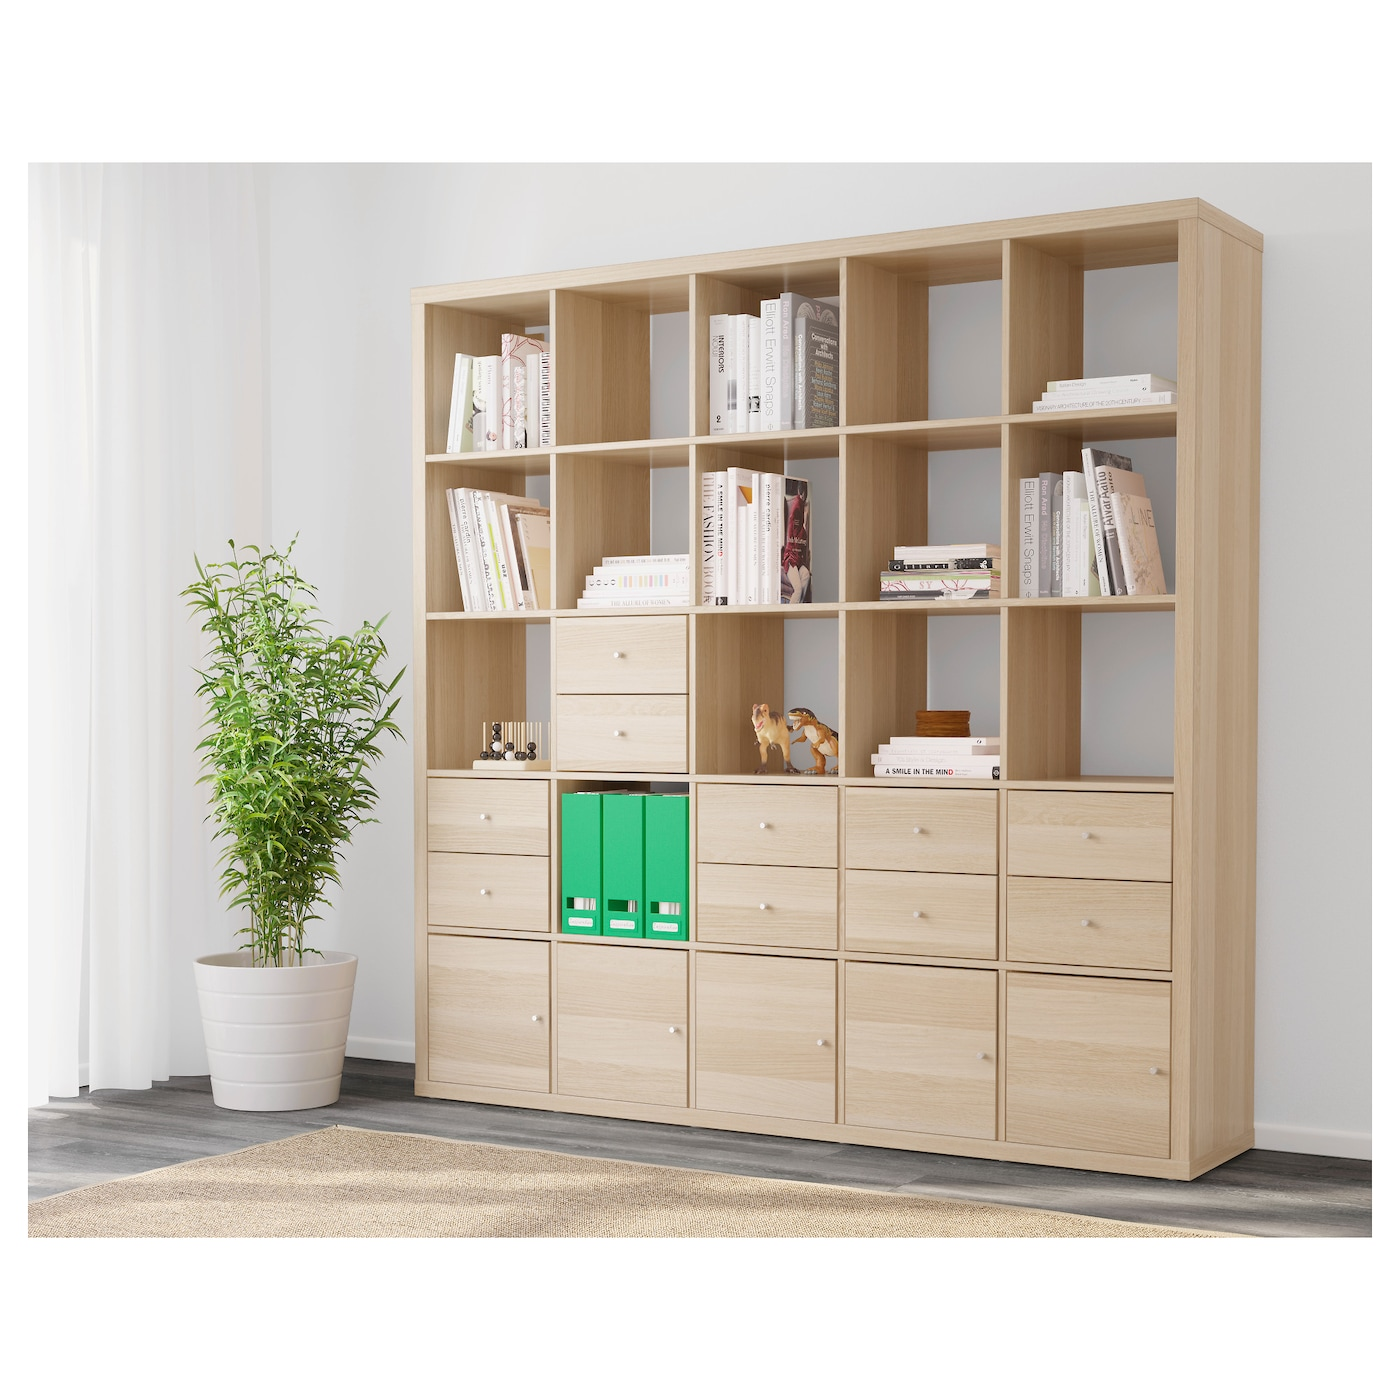 Kallax shelving unit with 10 inserts white stained oak effect 182 x 182 cm ikea - Mobile ikea kallax ...